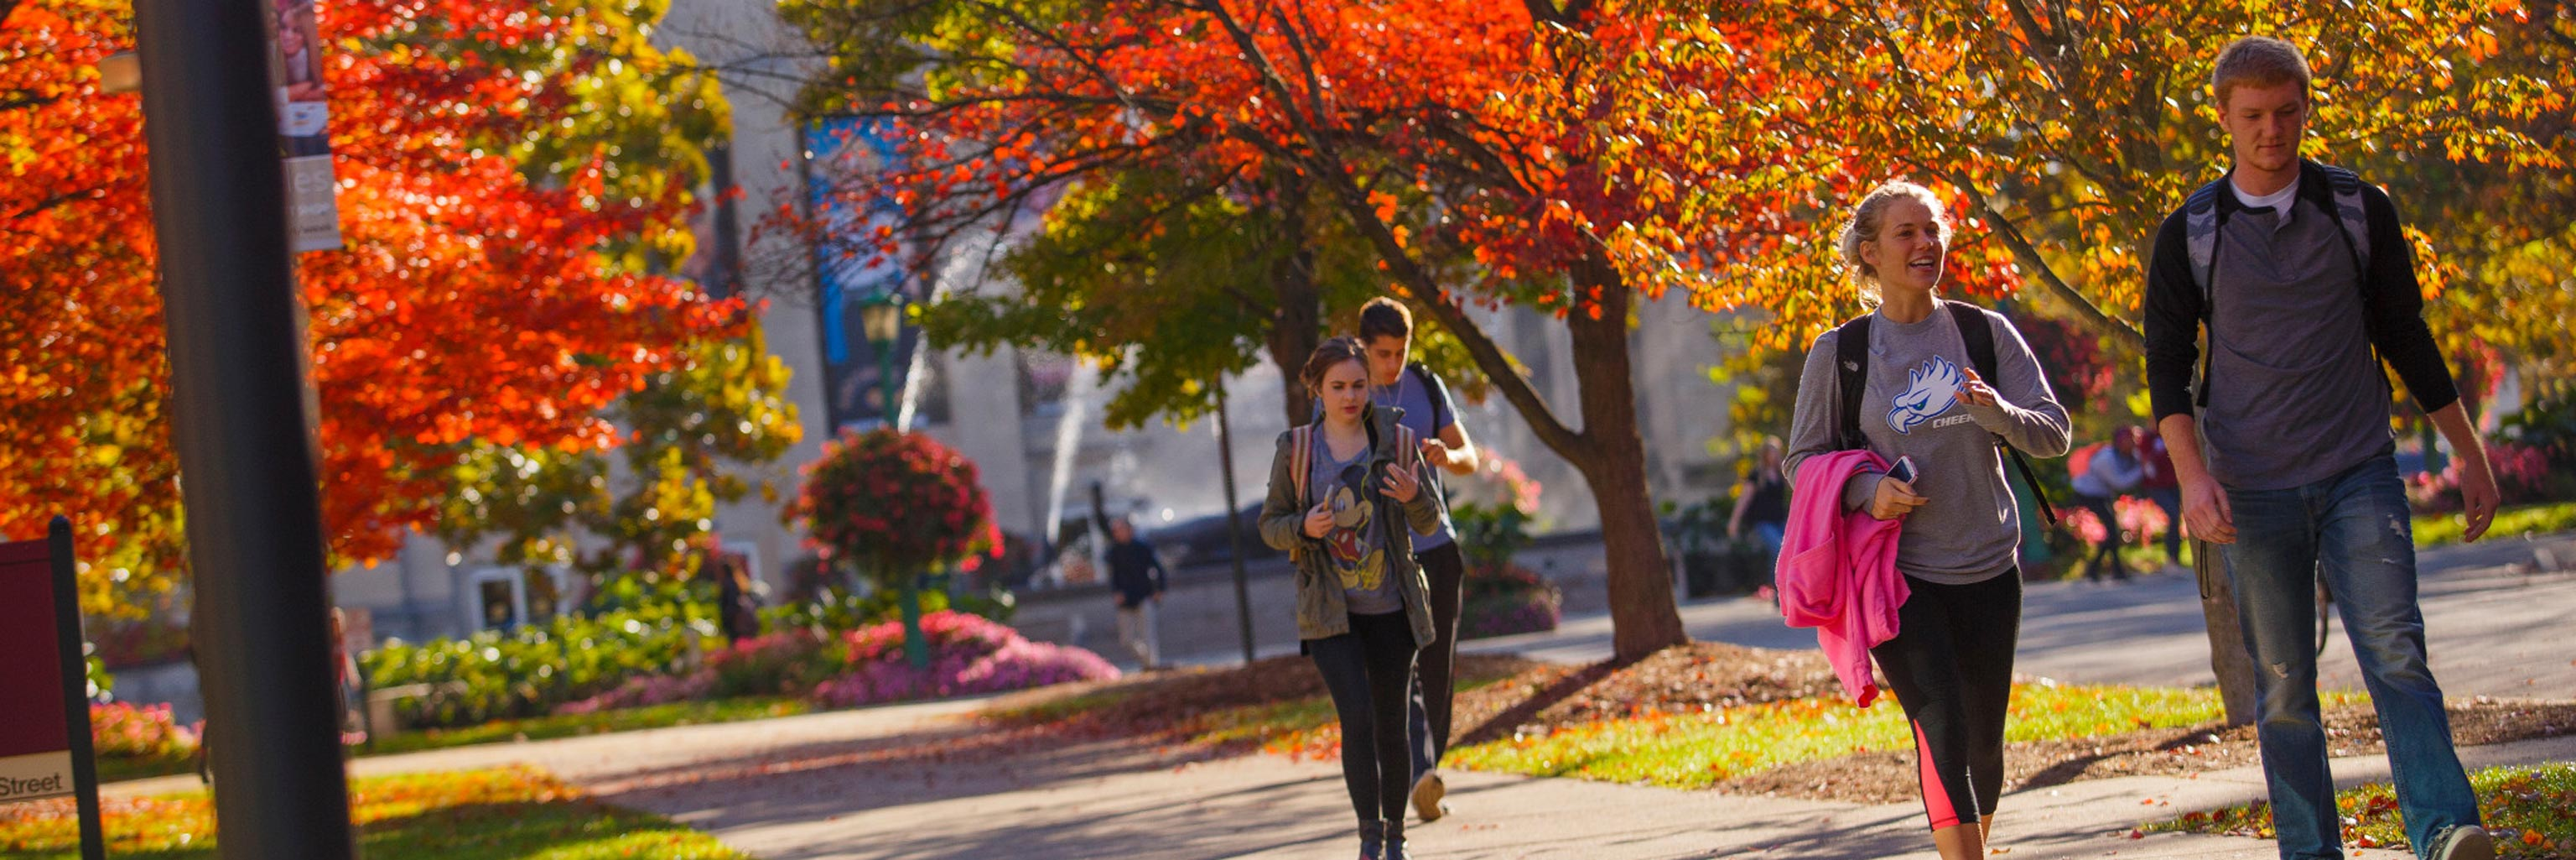 People walking down a campus sidewalk in the fall